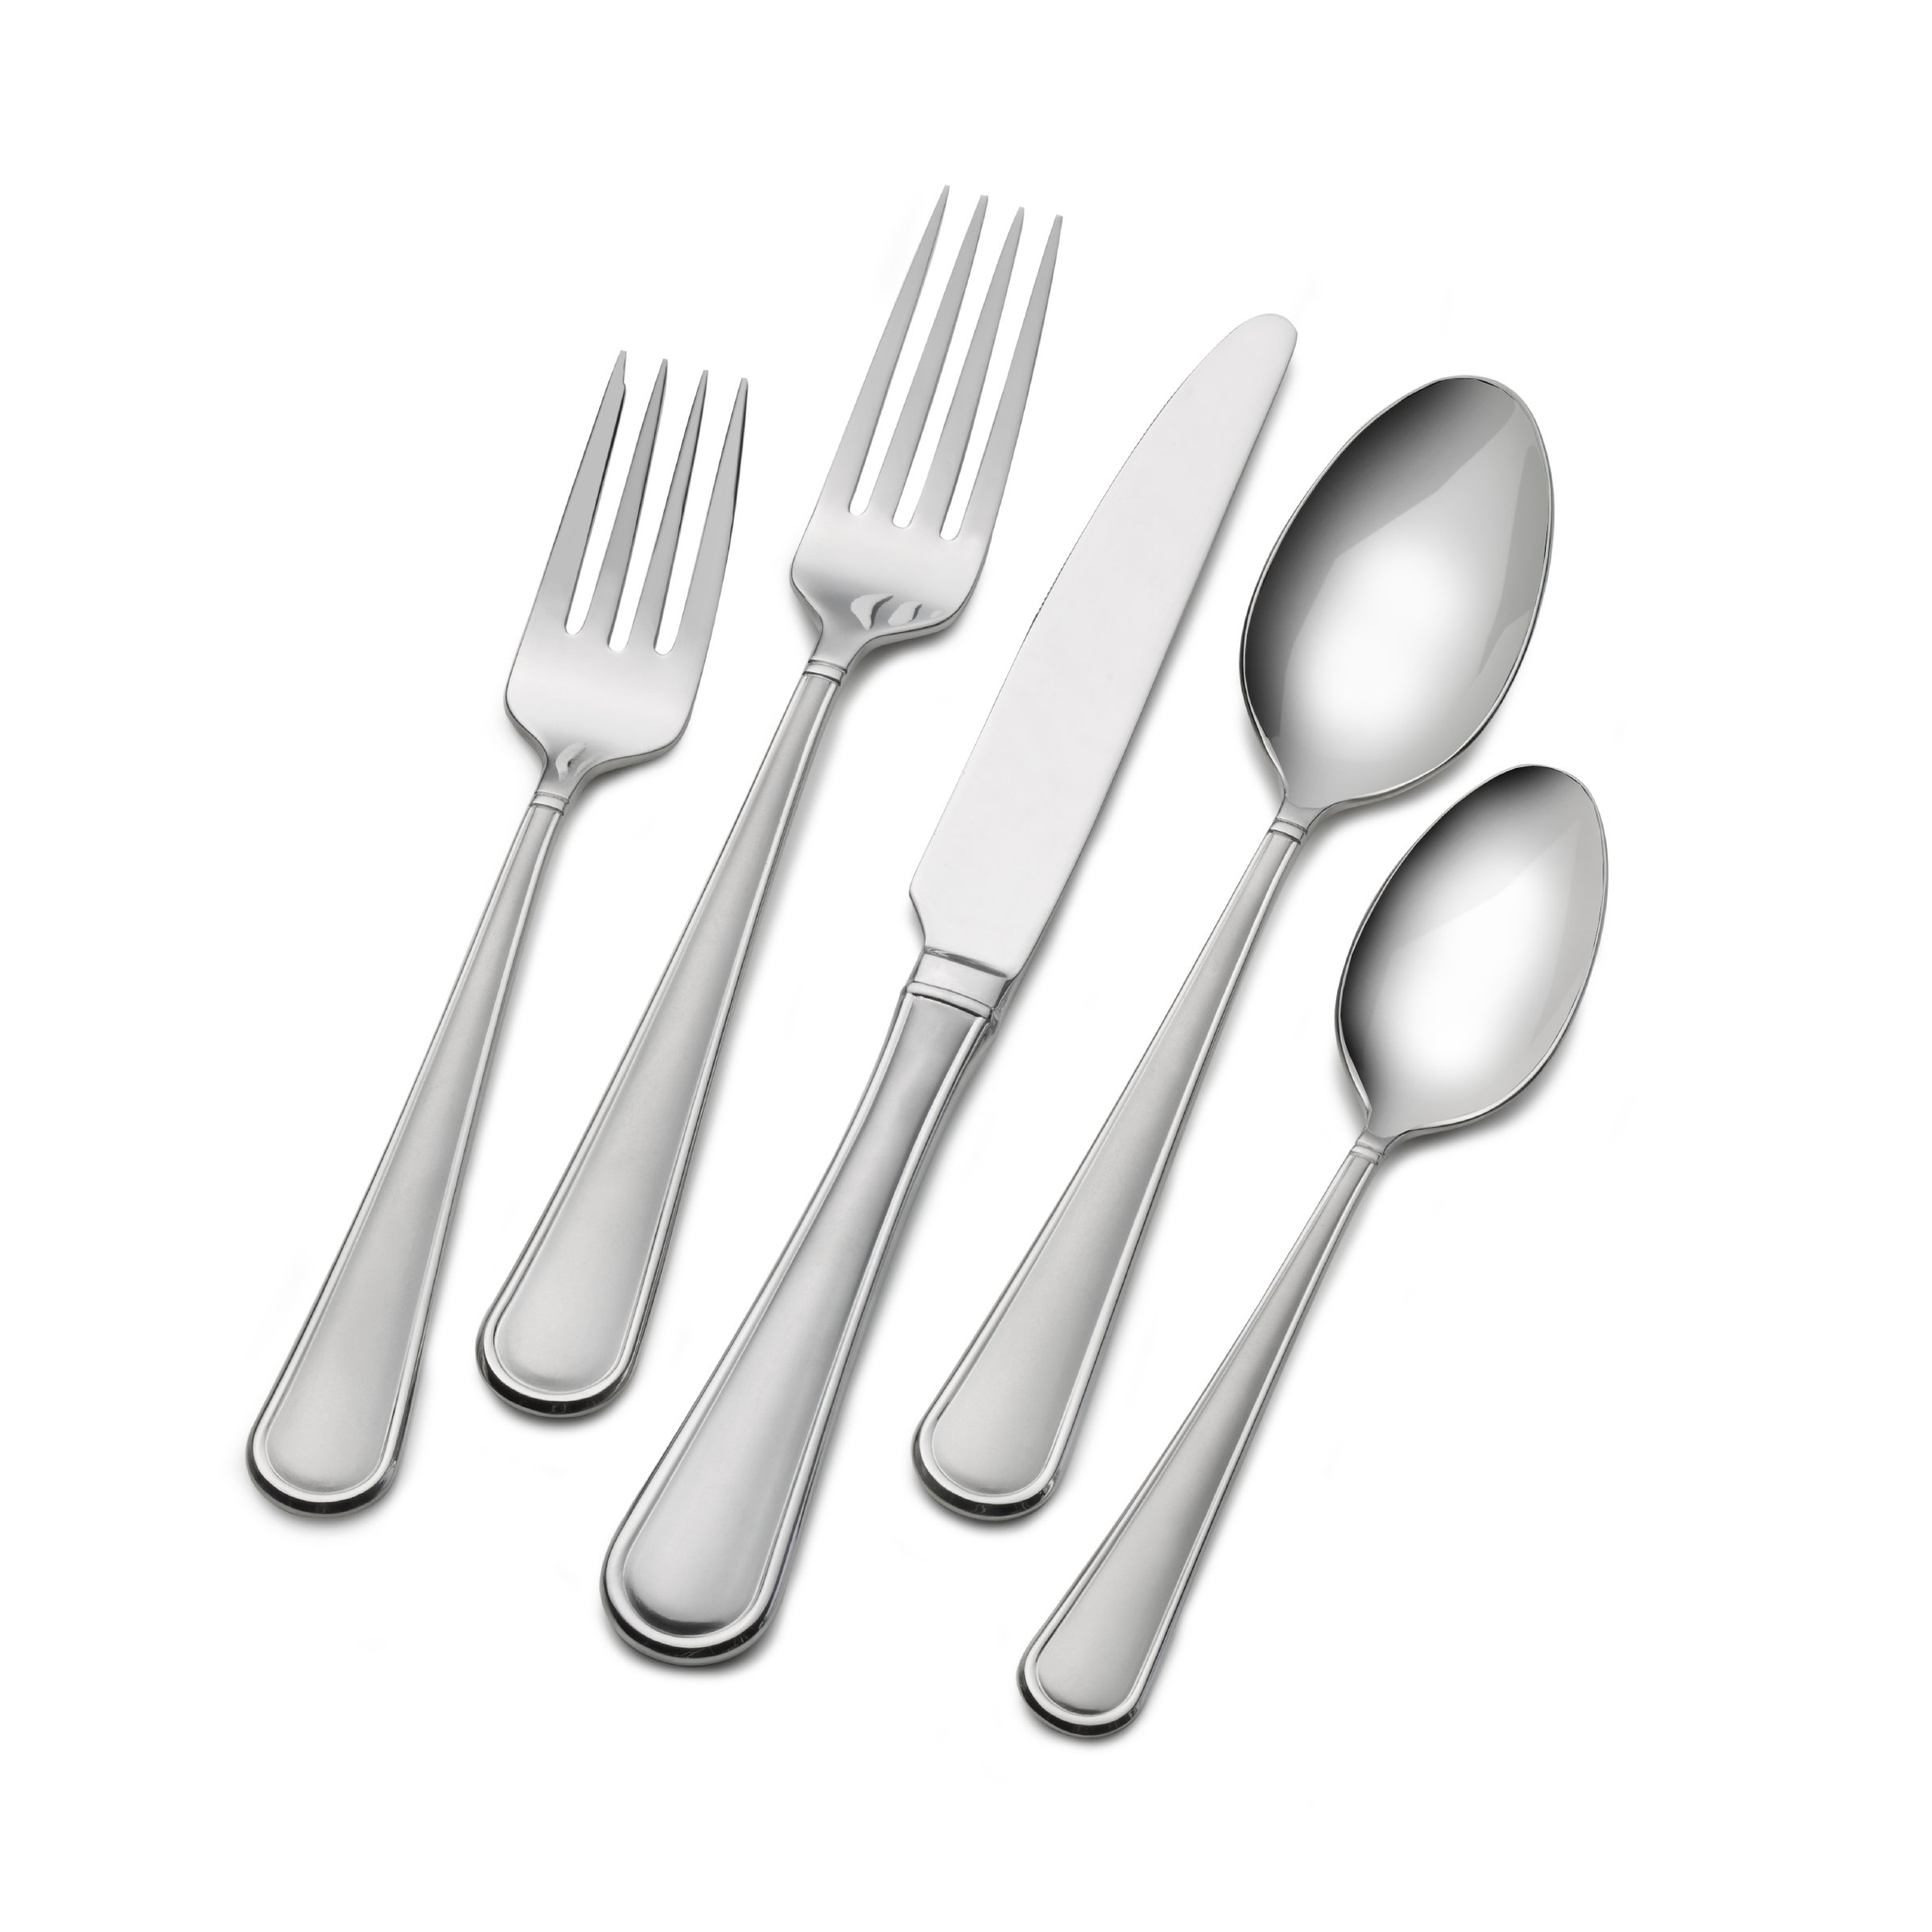 Mikasa Virtuoso Frost 65-Piece  Stainless Steel Flatware Set, Service for 12 by Mikasa